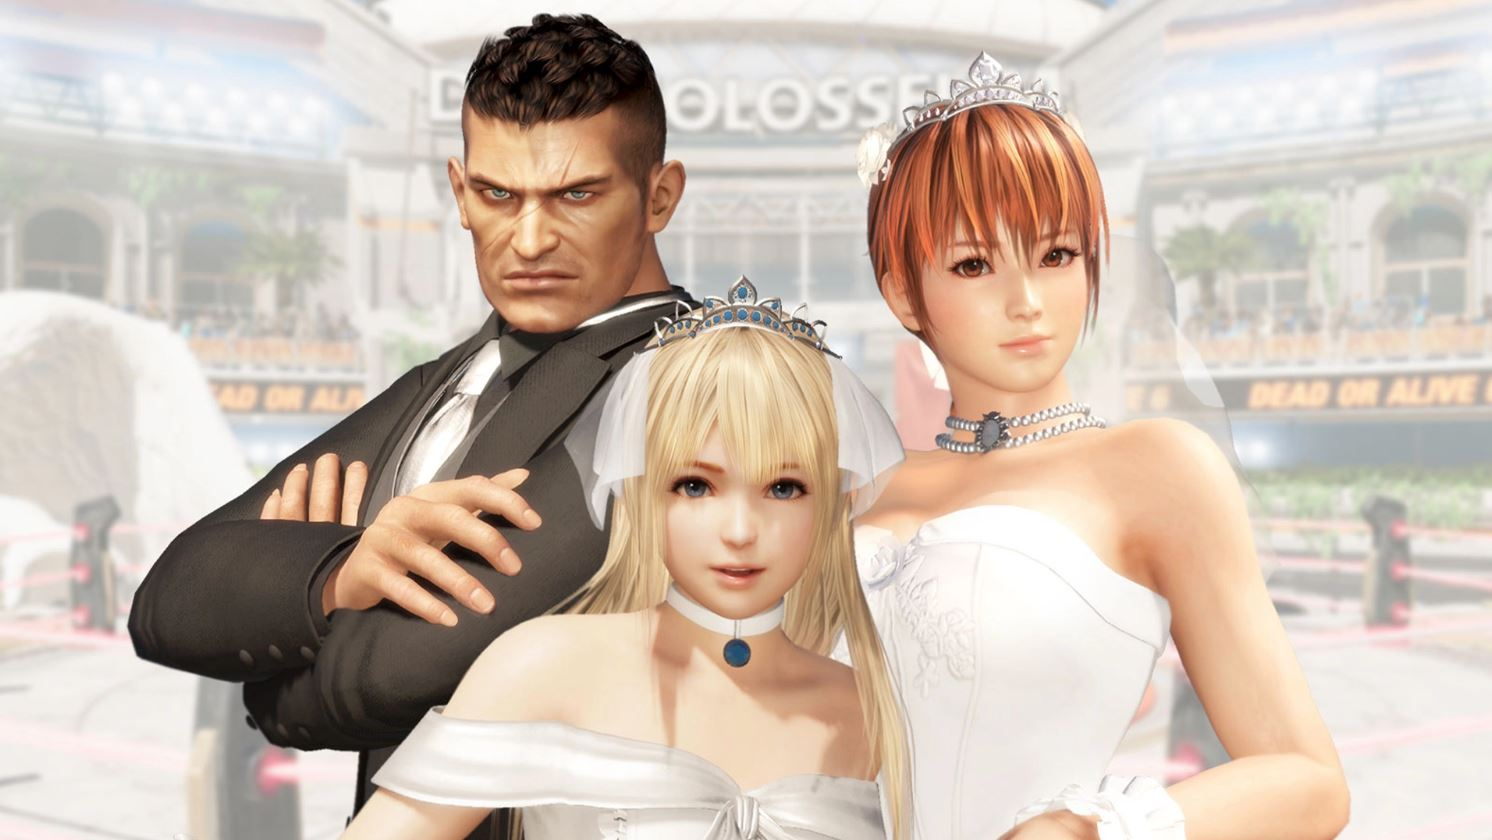 Dead or Alive 6 relies on its internal autosave feature to track your in-game progress.